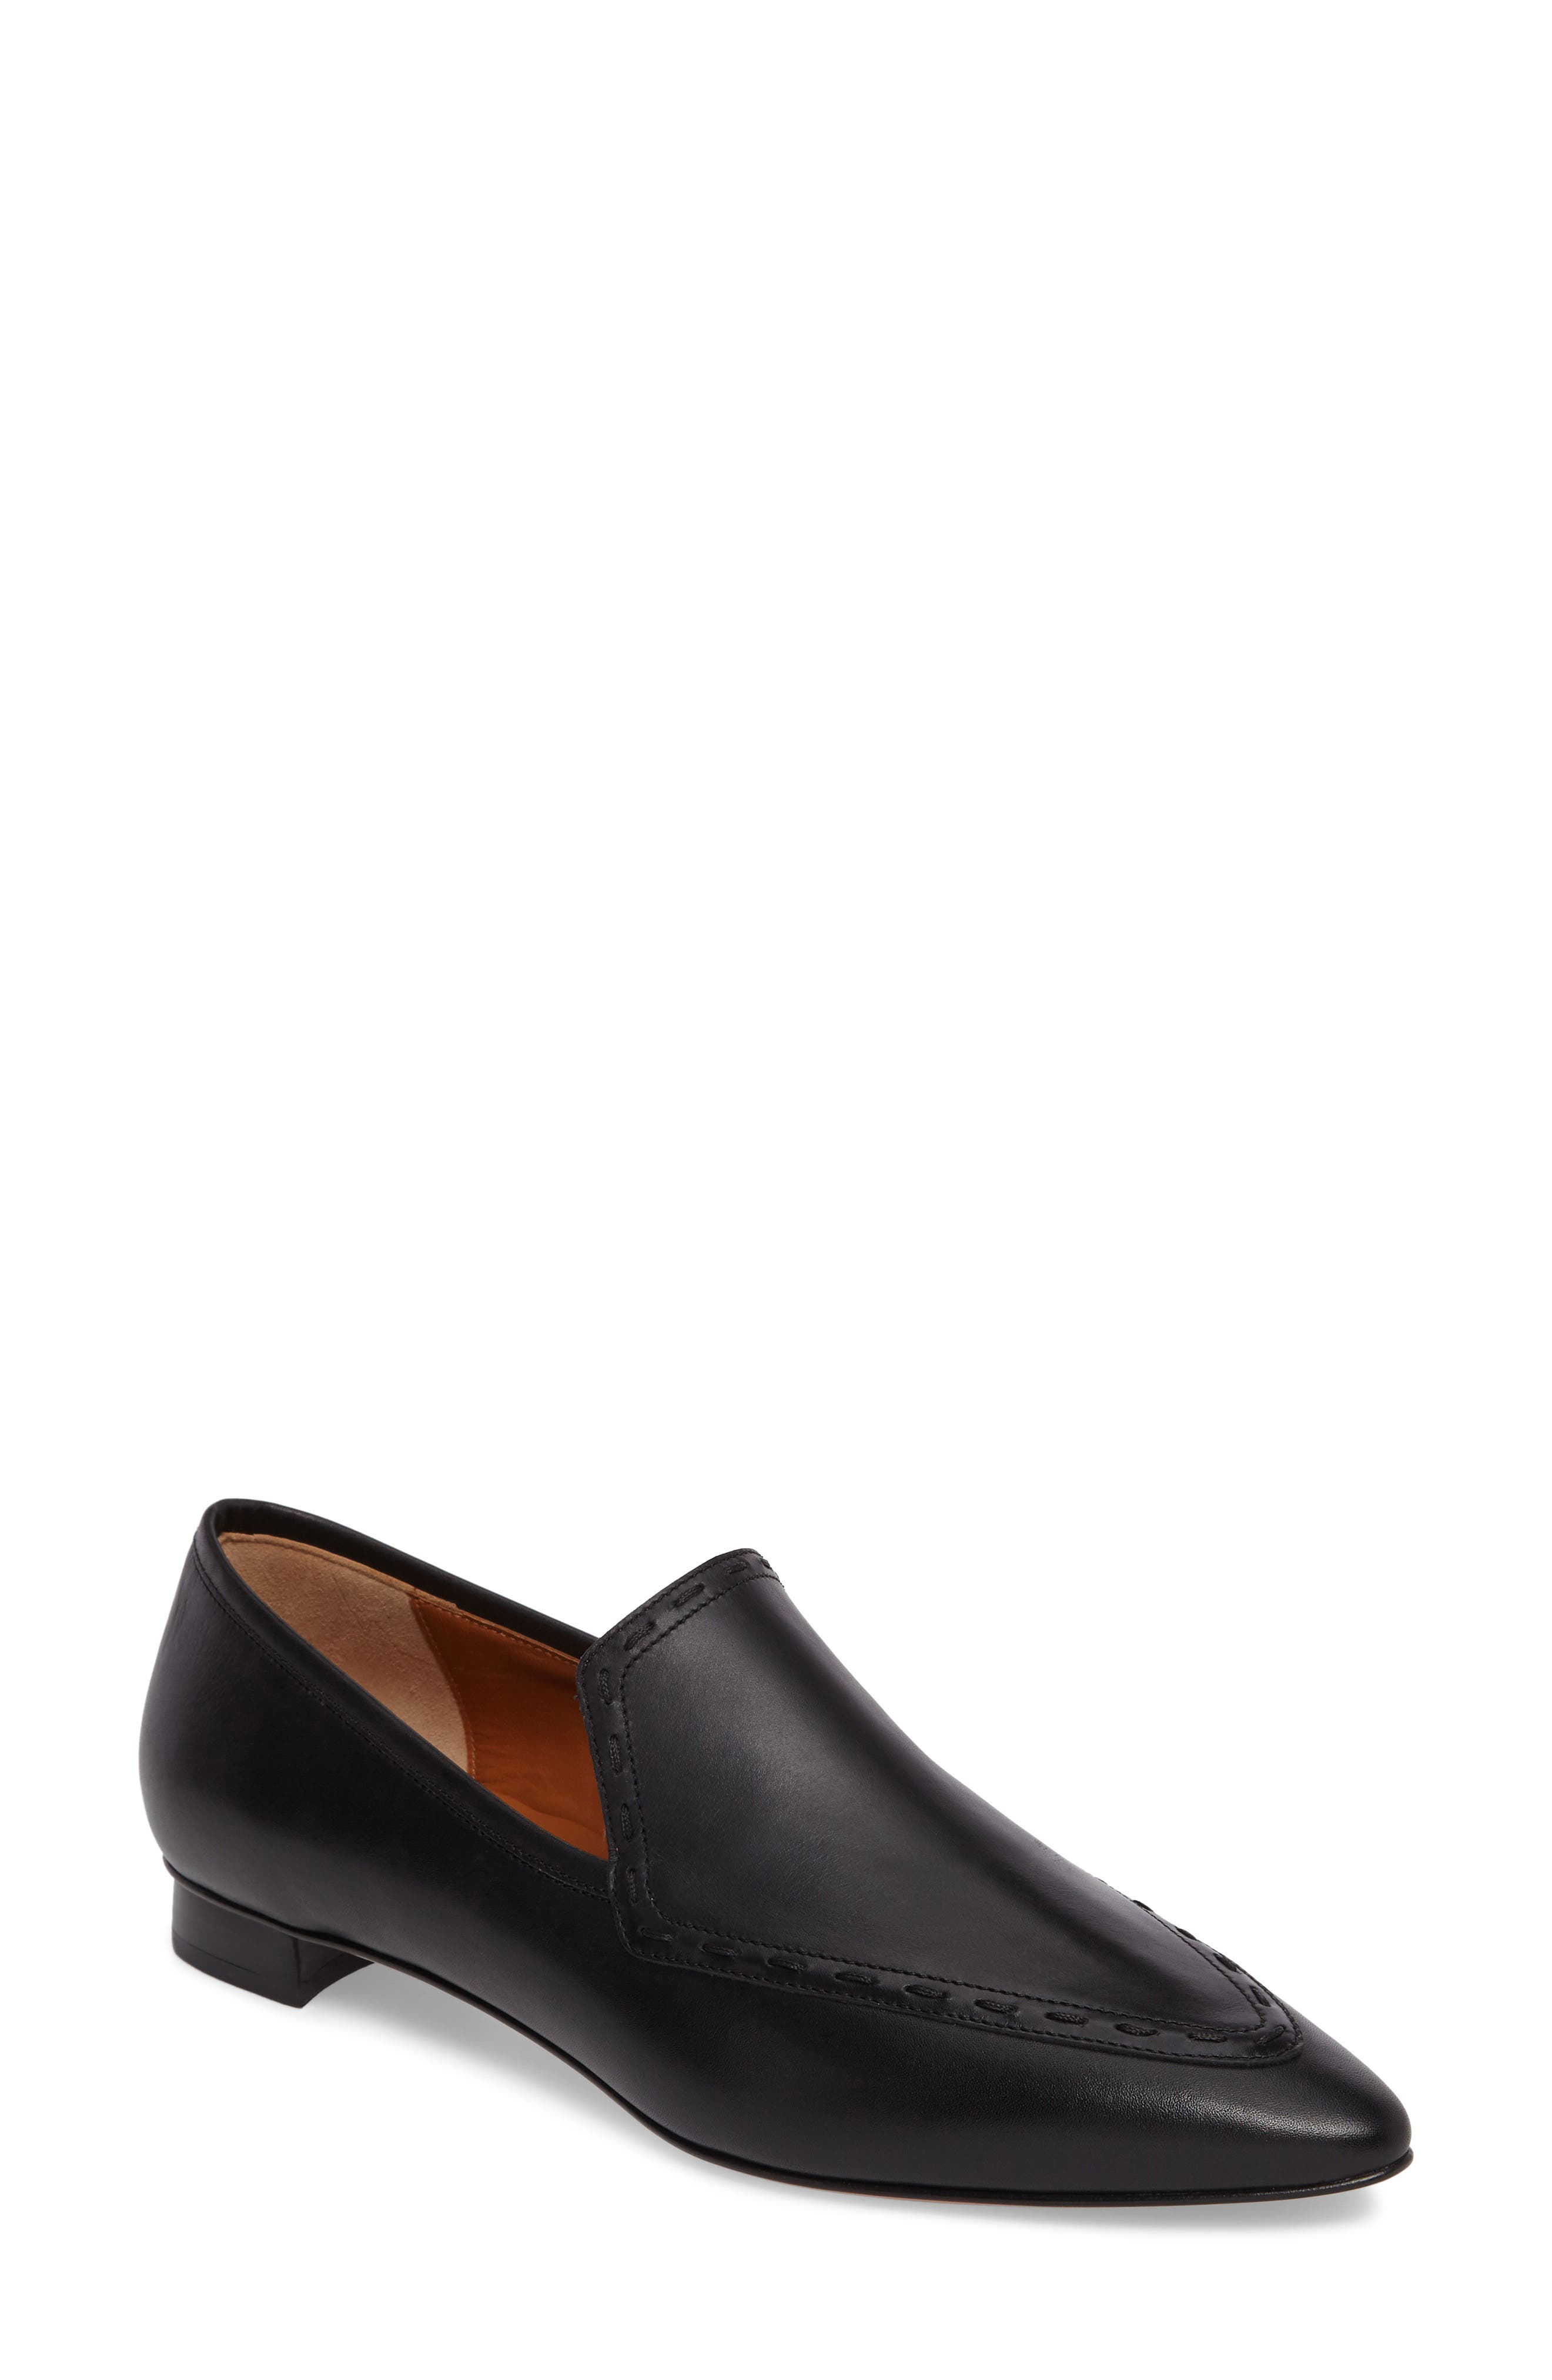 Piera Weatherproof Loafer,                             Main thumbnail 1, color,                             001